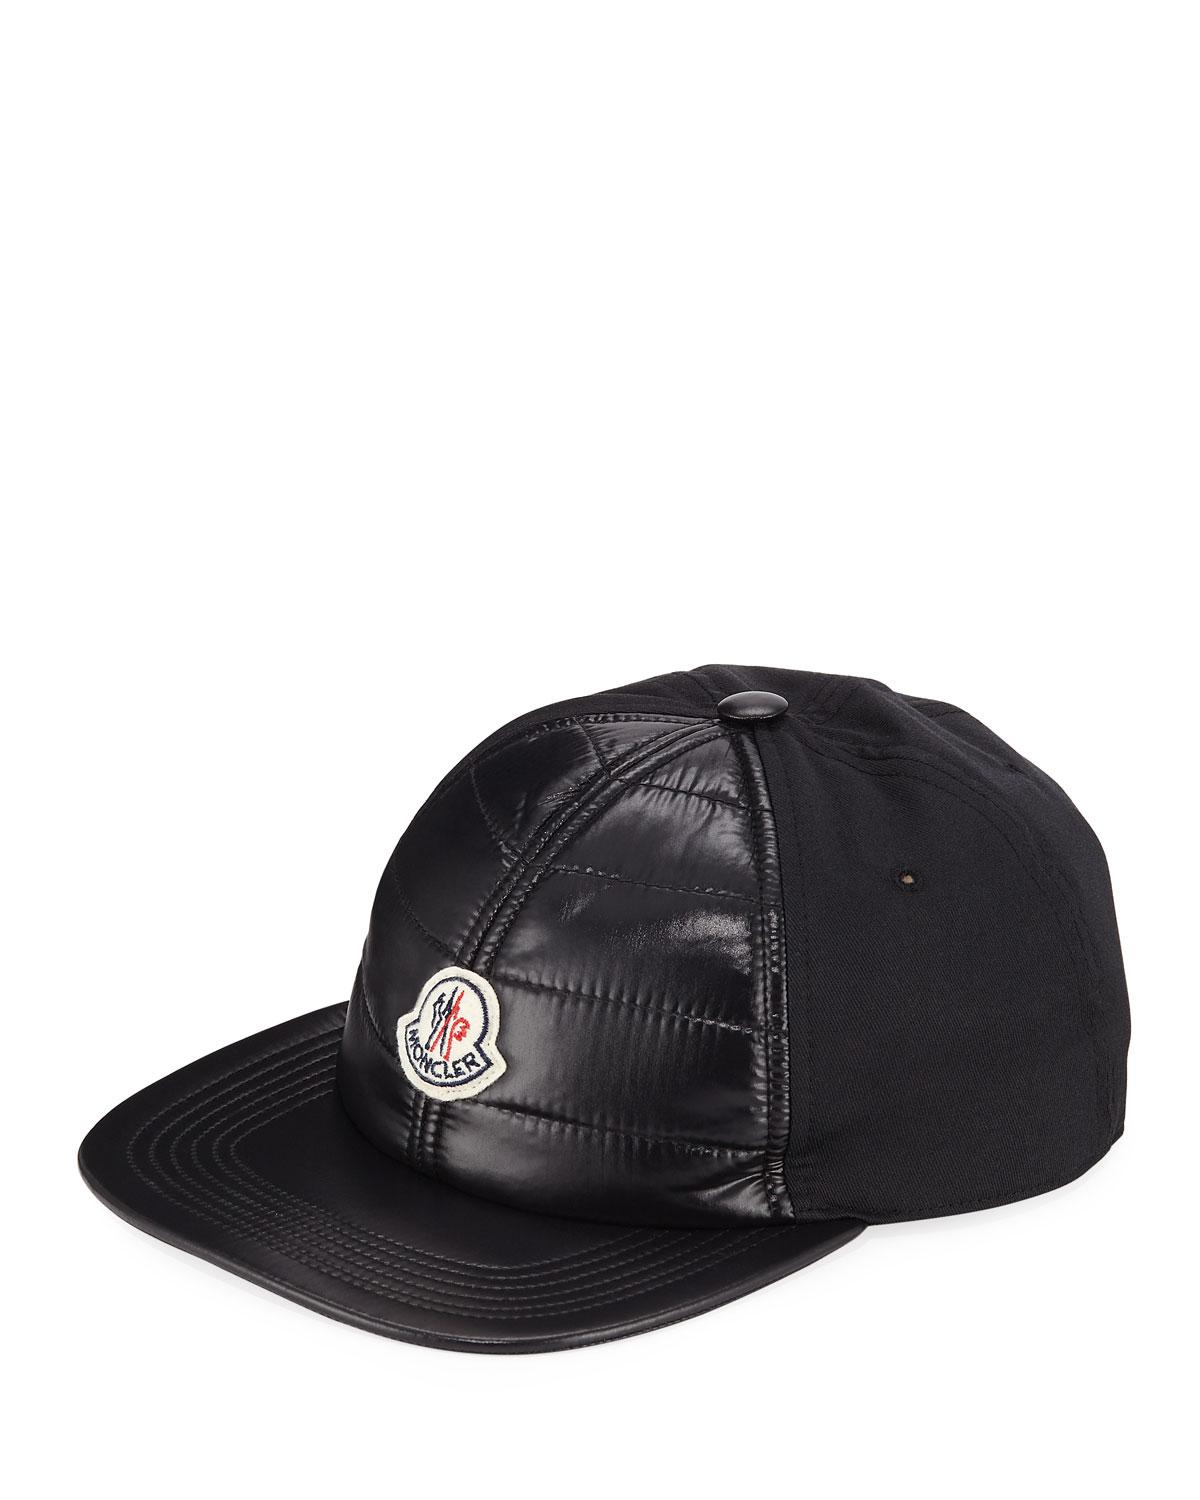 c6bc64d7cc8 Lyst - Moncler Men s Quilt-front Baseball Cap in Black for Men